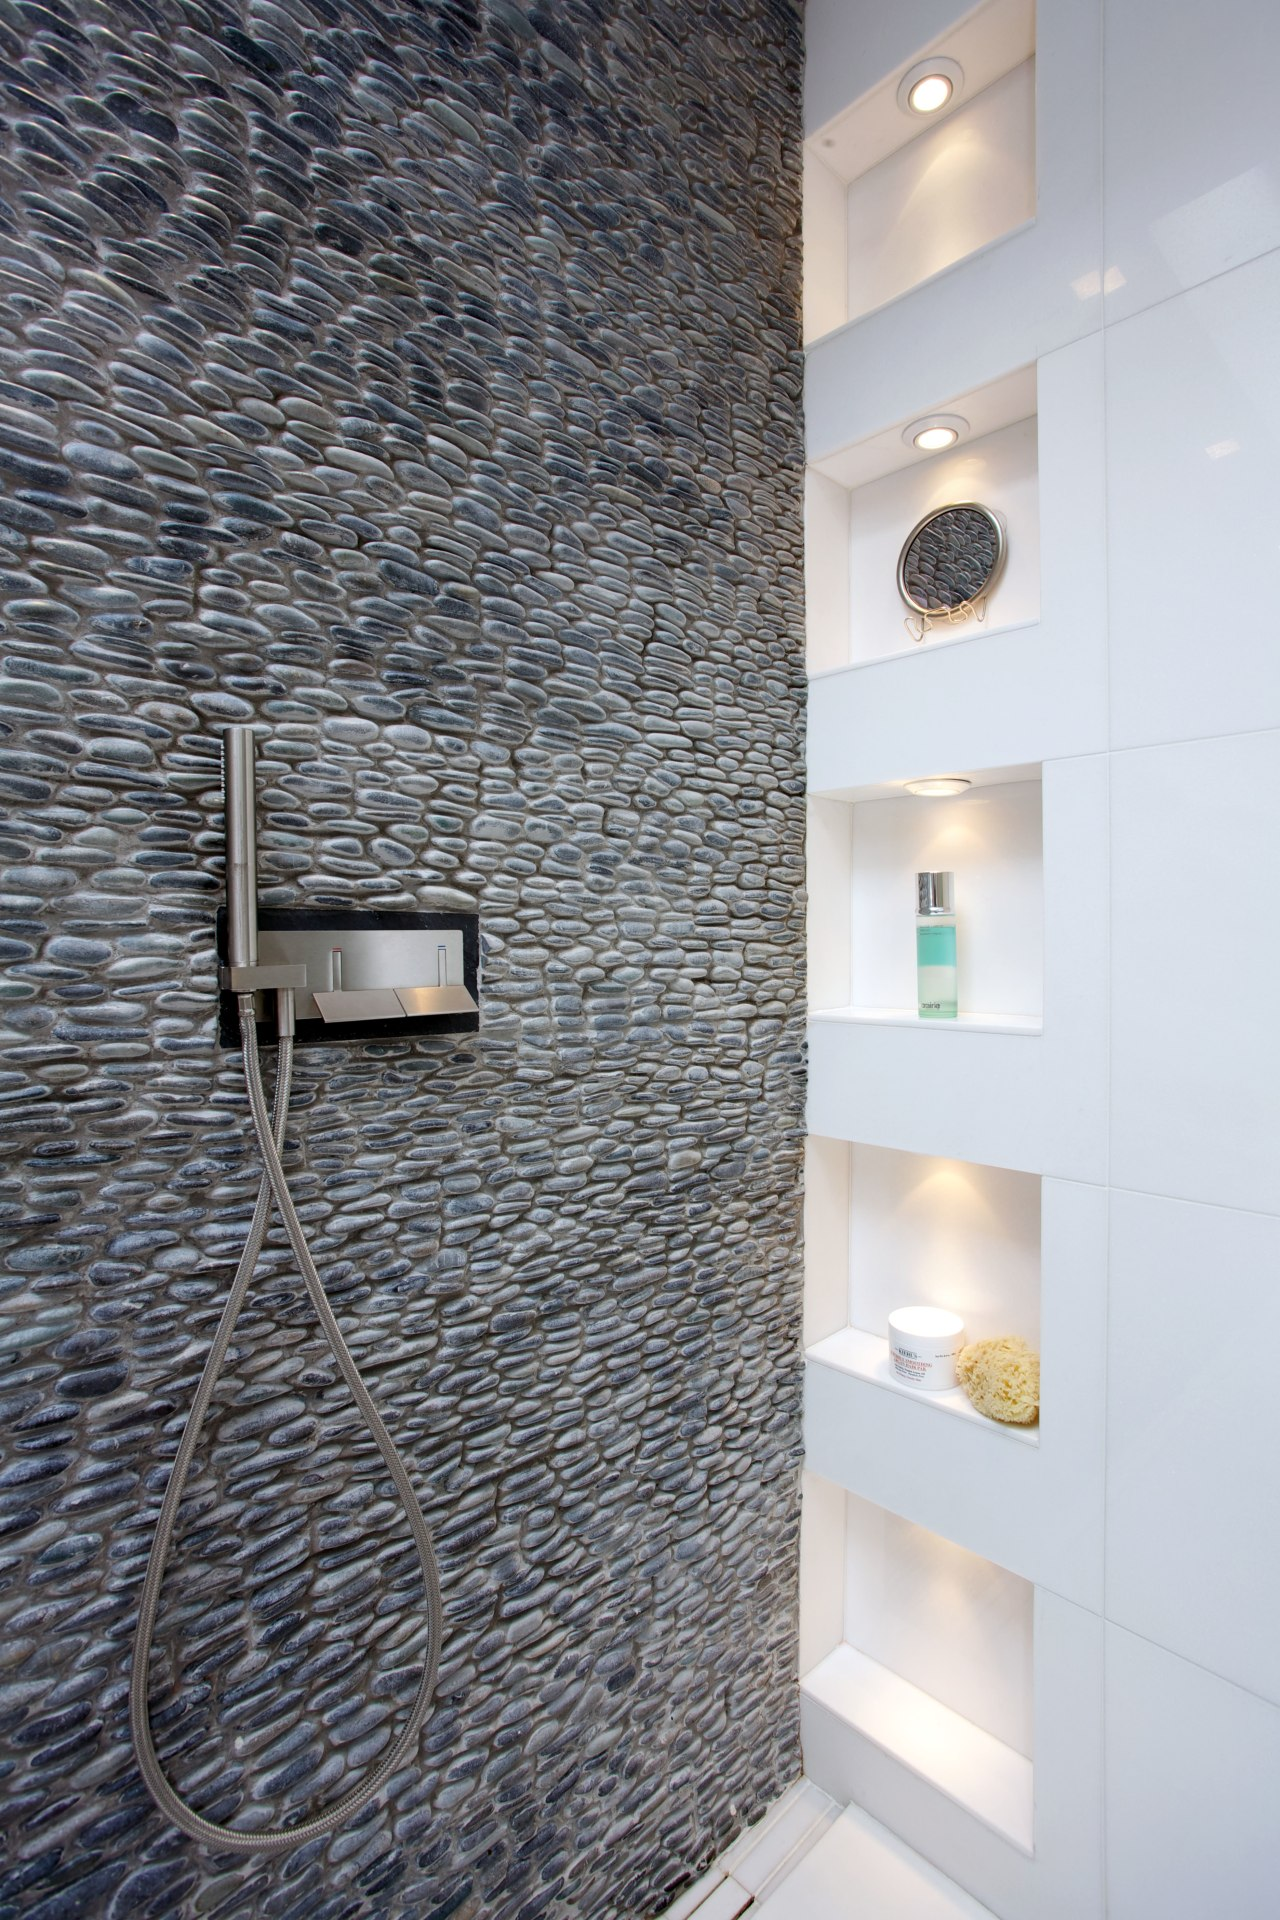 Wall-mounted faucets enhance the streamlined look of this bathroom, ceiling, floor, flooring, interior design, tile, wall, gray, white